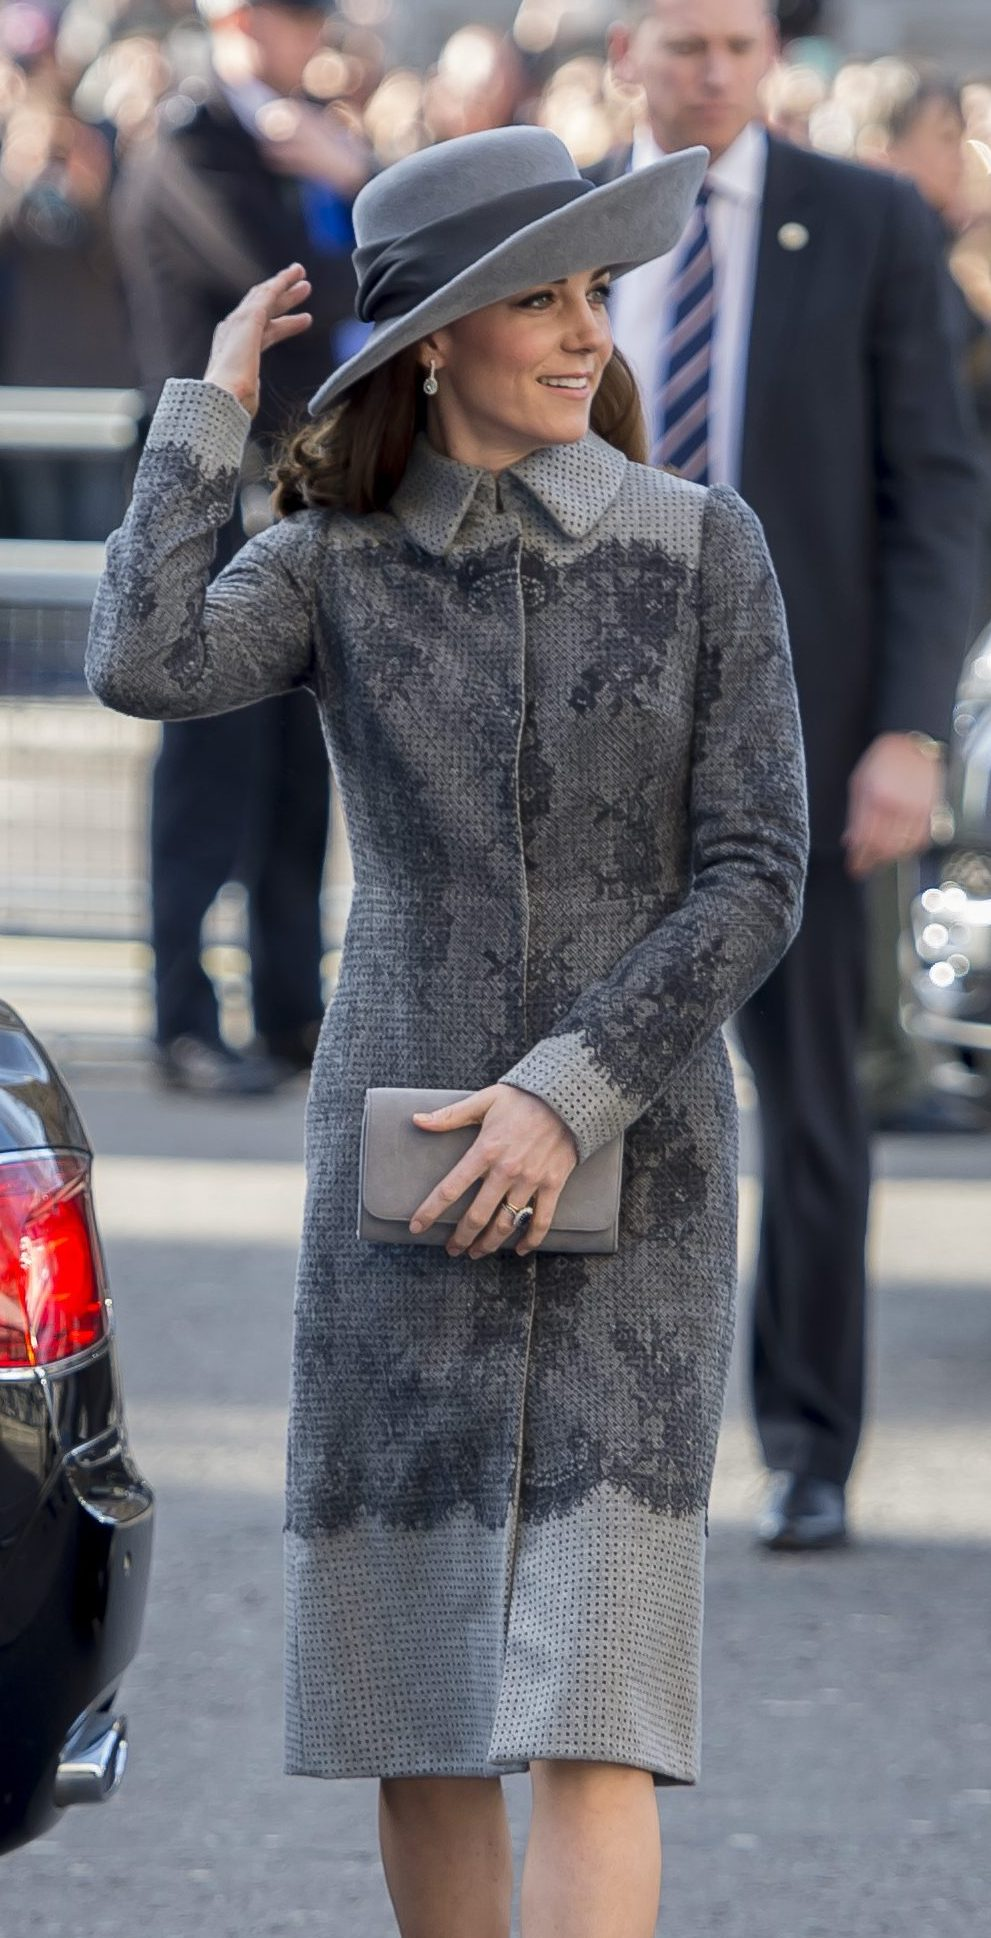 The Duchess of Cambridge in a custom grey lace coat by Erdem. David Mirzoeff / i-Images